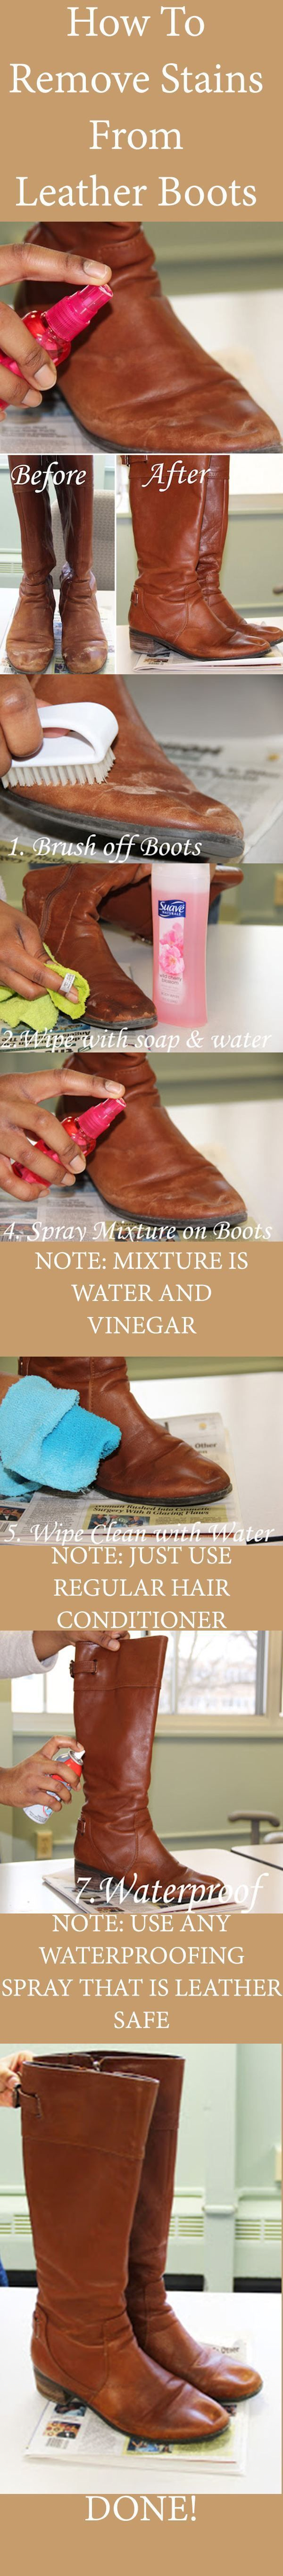 Remove stains on leather